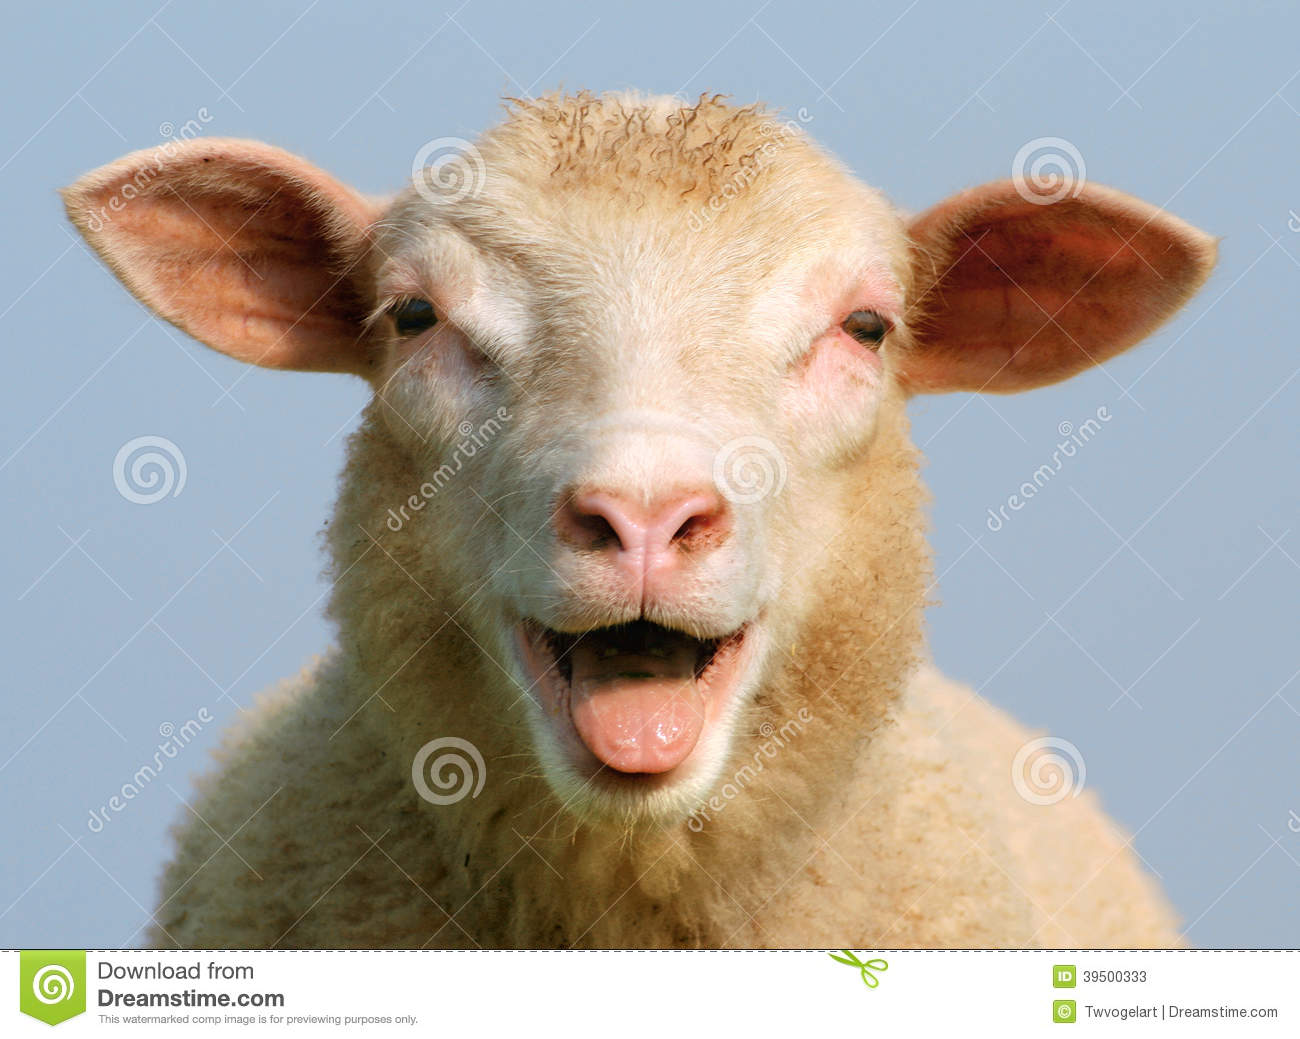 Luci the sheep